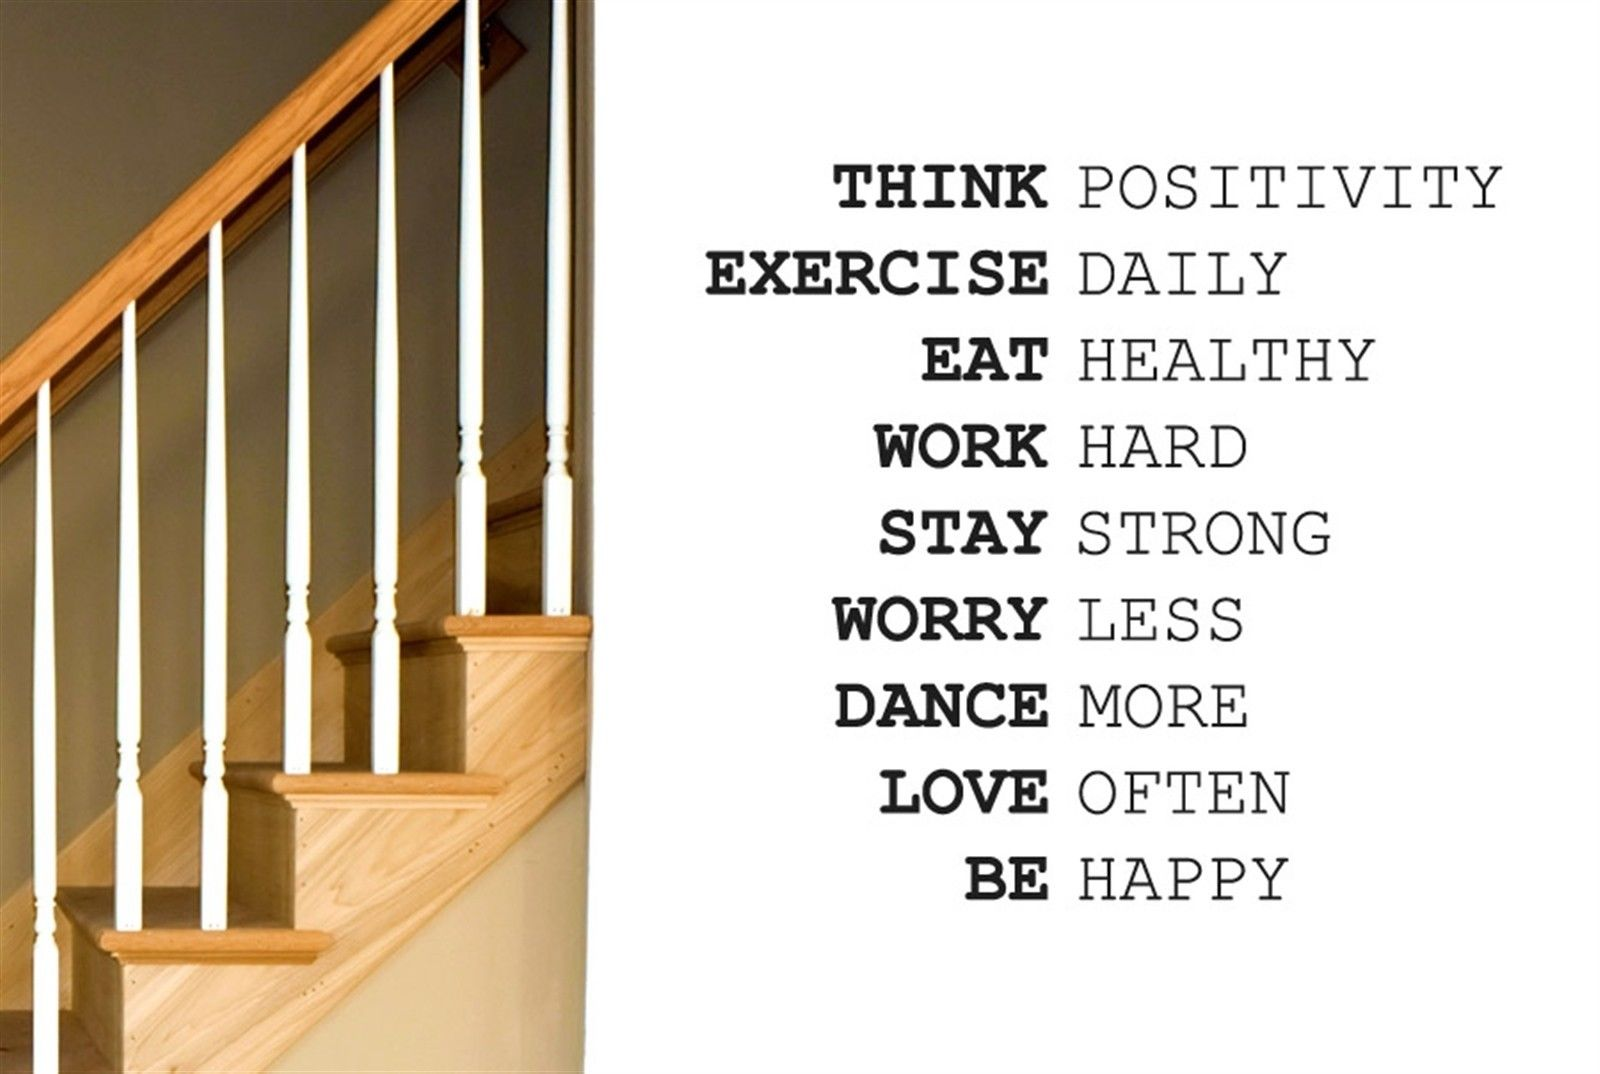 Q026 Think Positivity Exercise Daily Work Hard Wall Stiker Art Decals - Διακόσμηση σπιτιού - Φωτογραφία 3